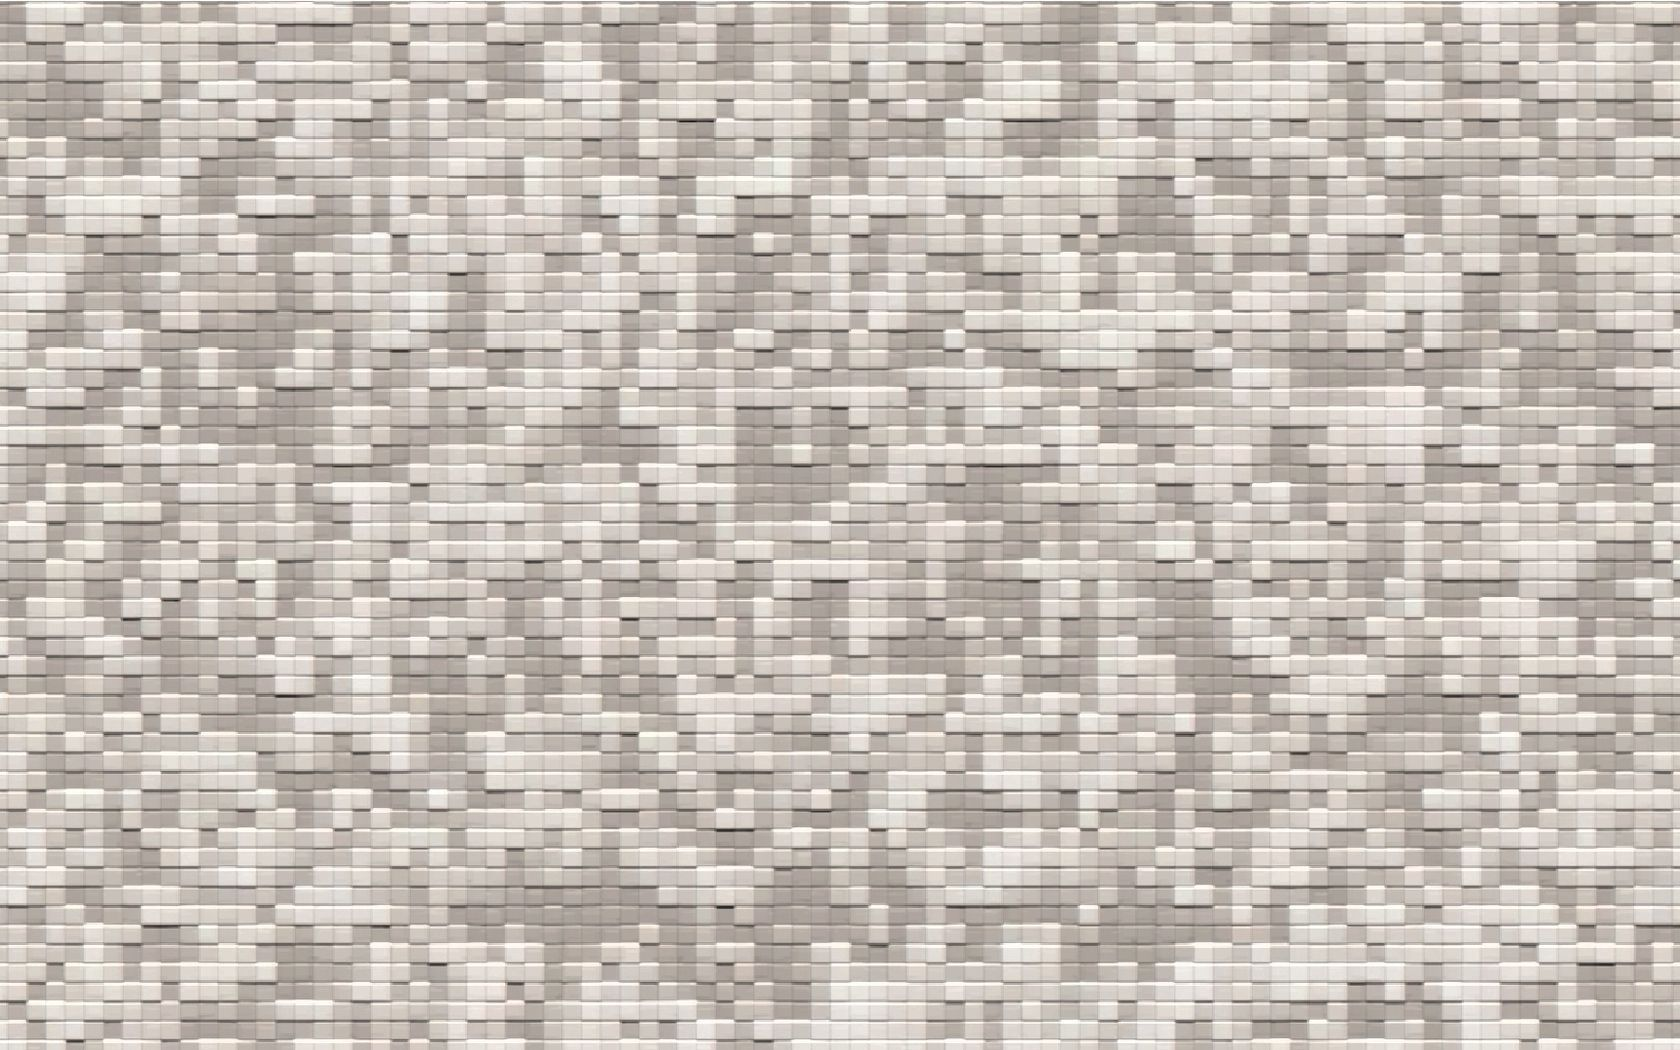 67392 download wallpaper Textures, Texture, Pixel, Grey, Digital, Camouflage screensavers and pictures for free